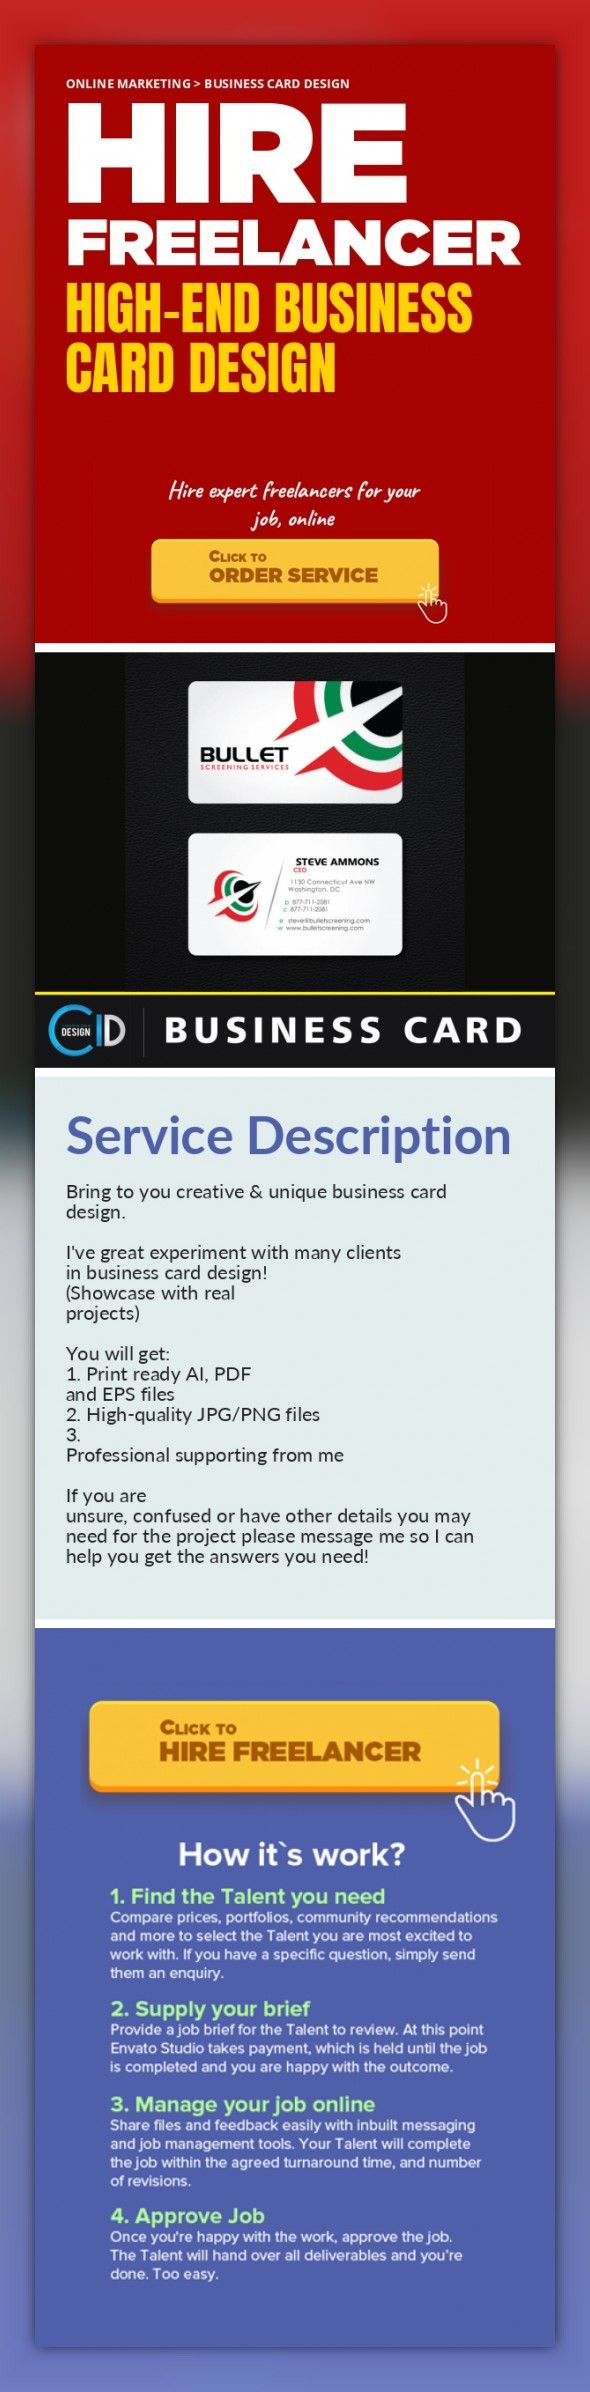 High end business card design online marketing business card design high end business card design online marketing business card design bring to you creative unique business card design ive great experiment with many reheart Gallery